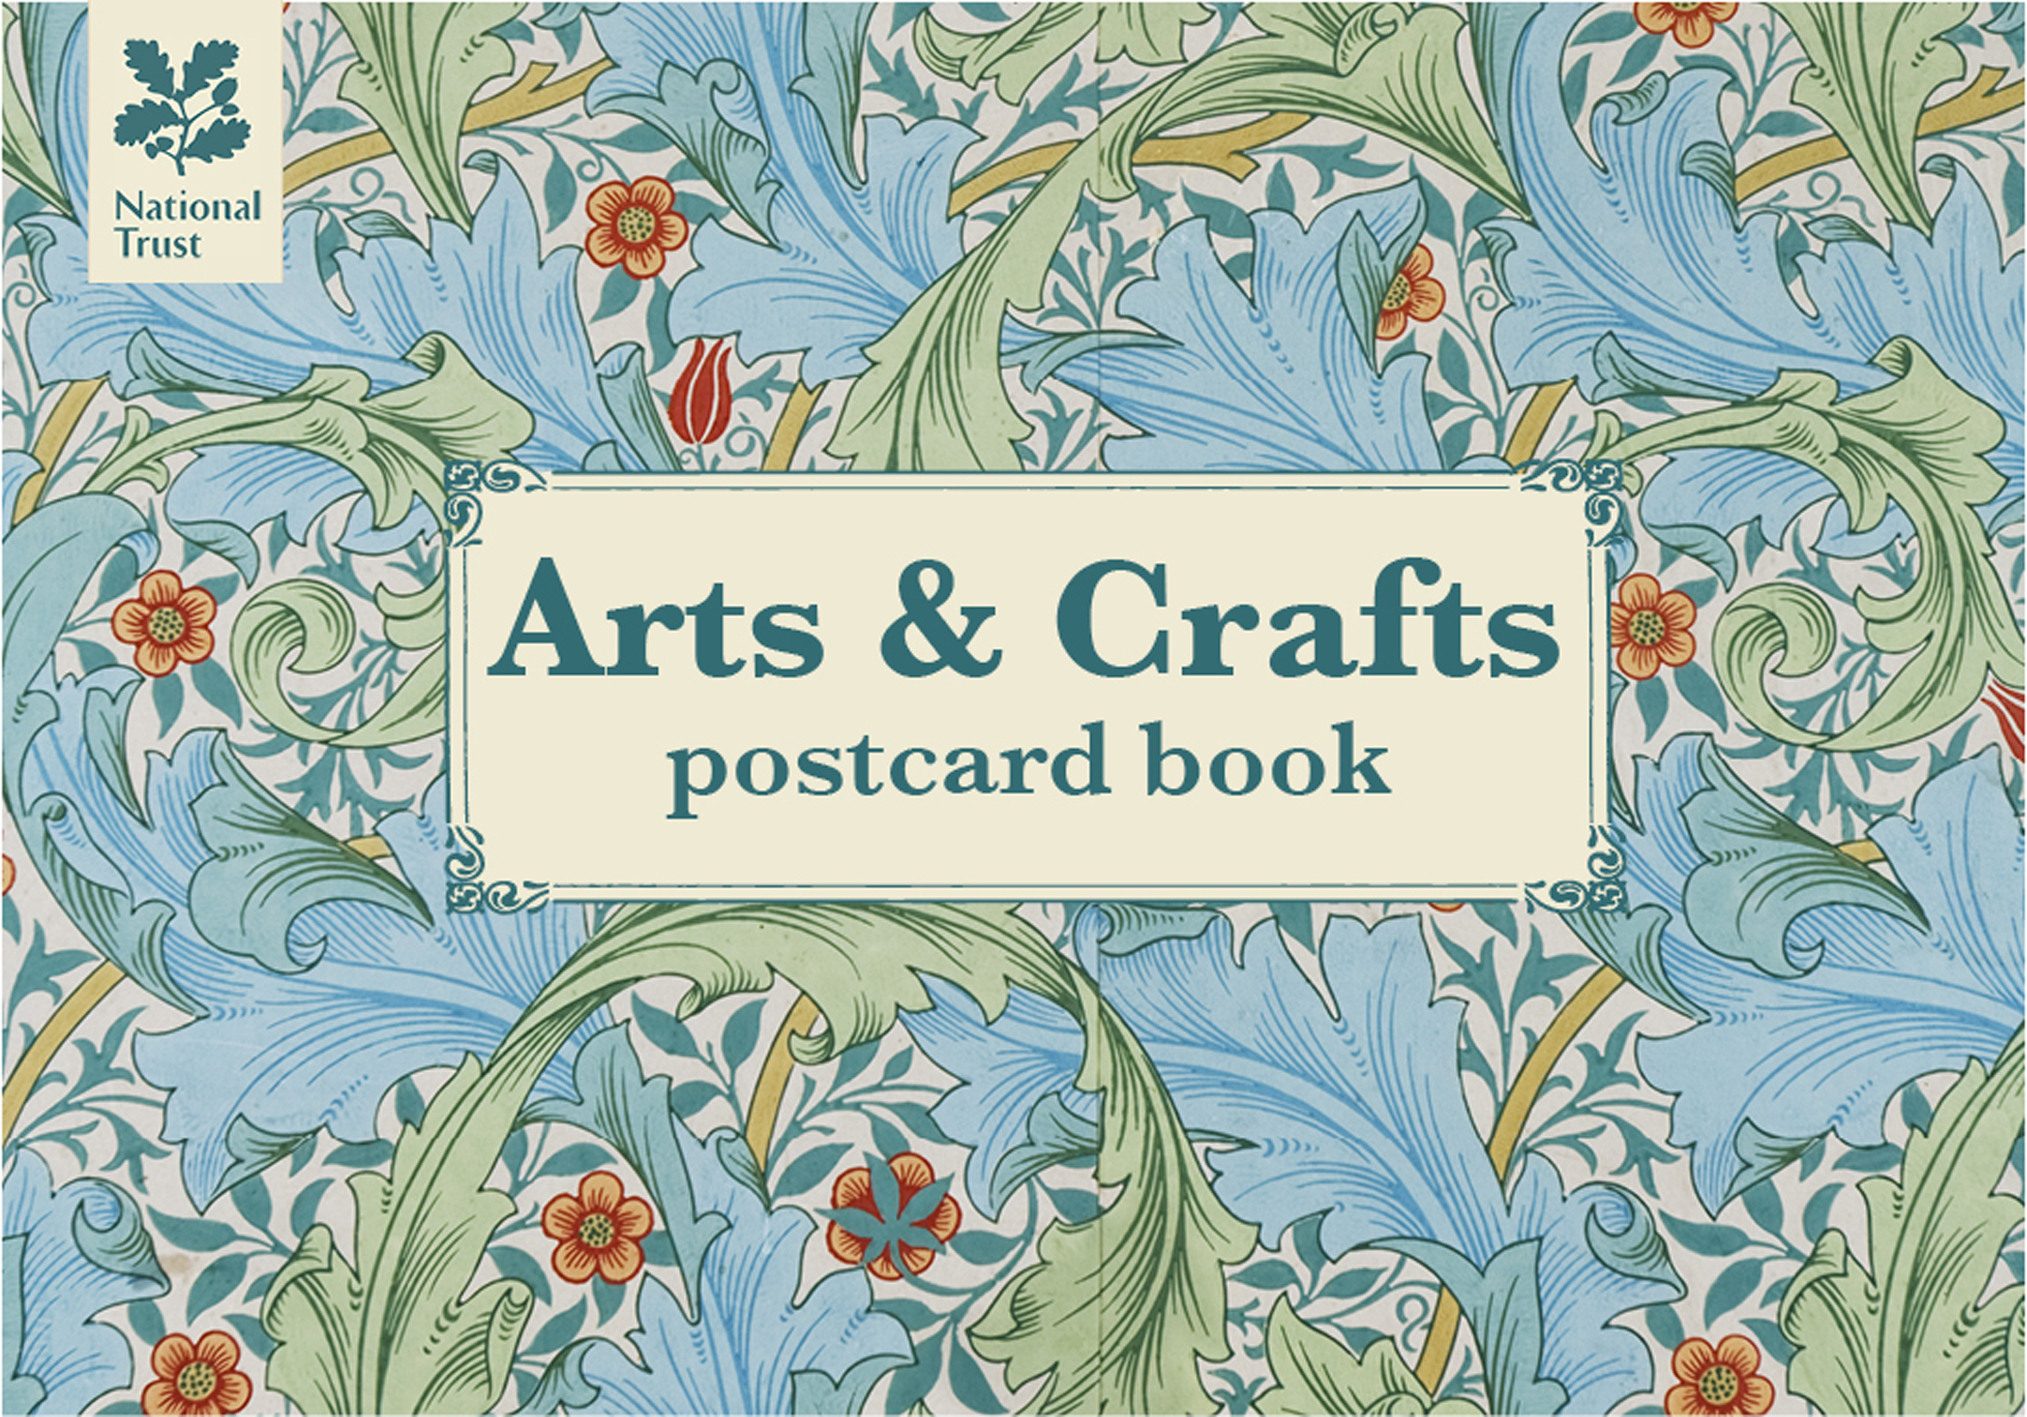 Arts & Crafts Postcard Book